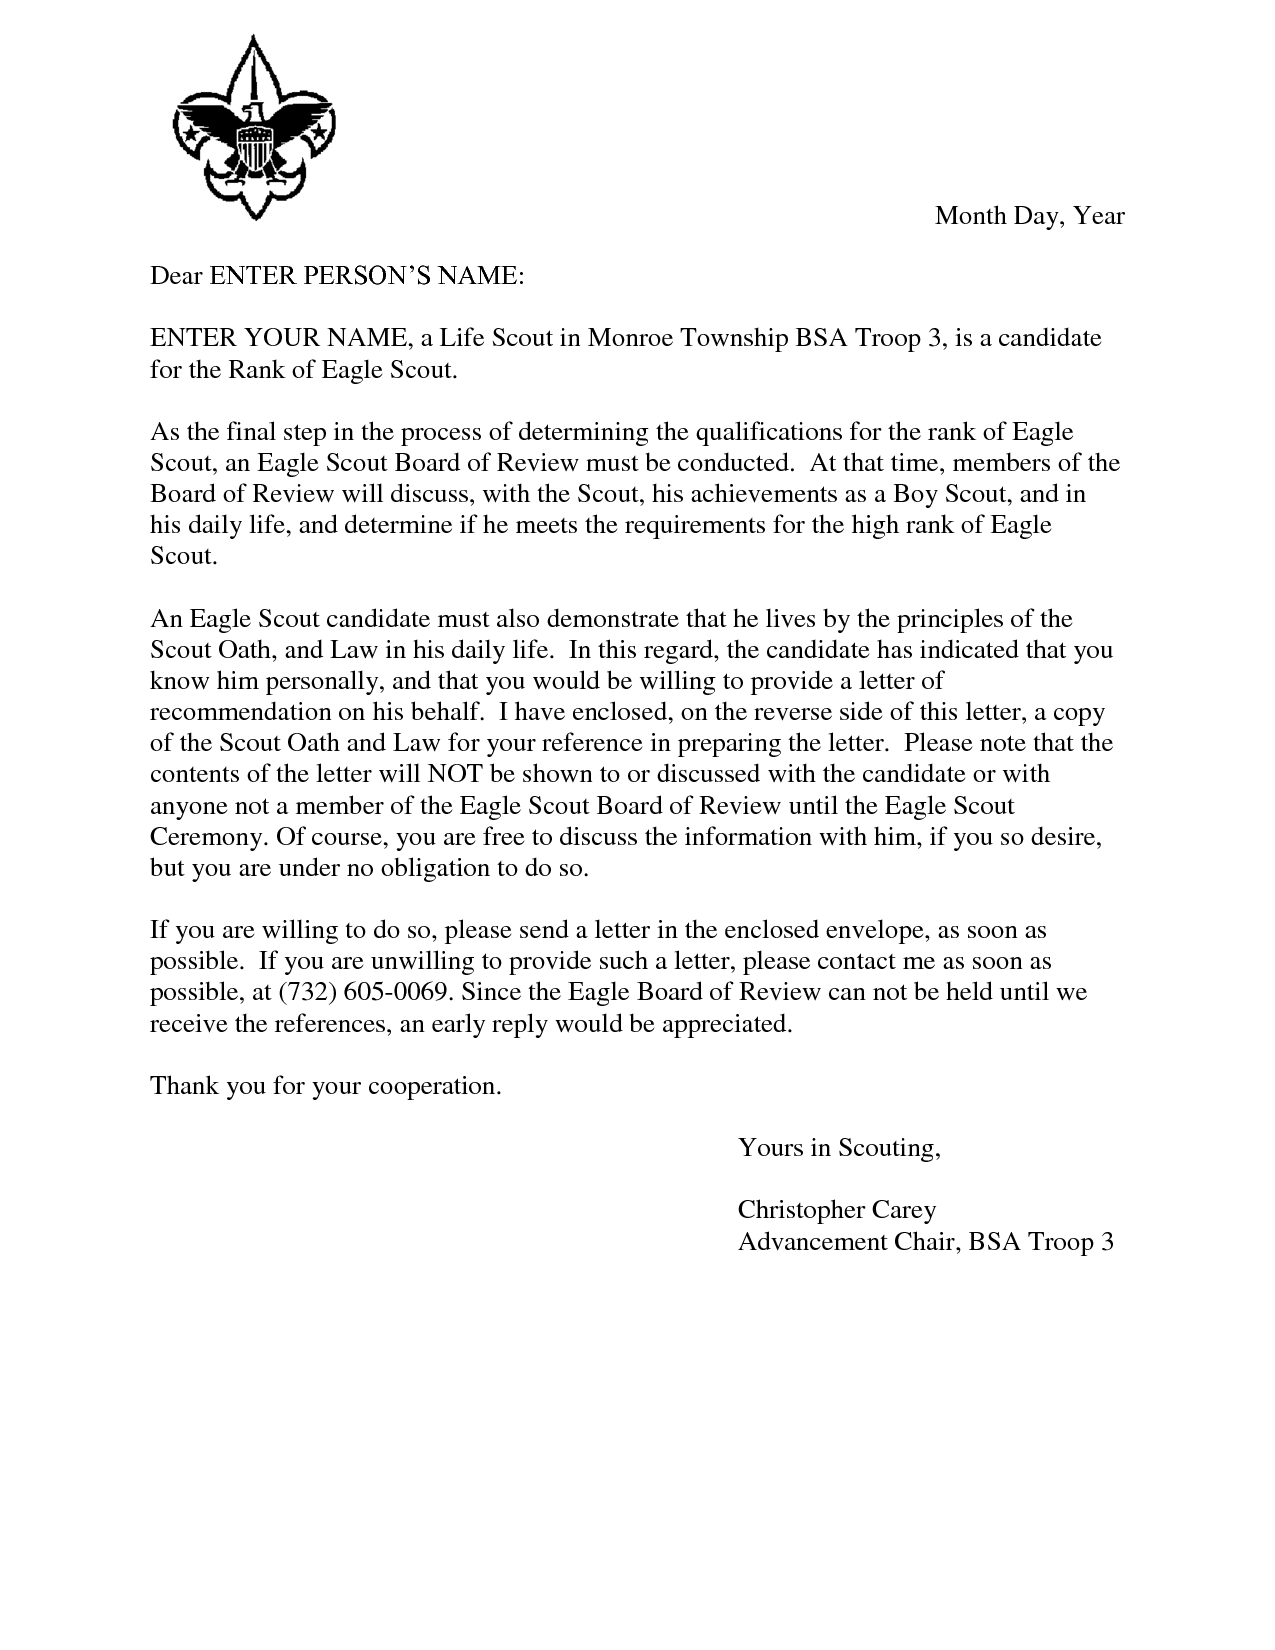 Eagle Scout Reference Request Sample Letter Doc 7 By